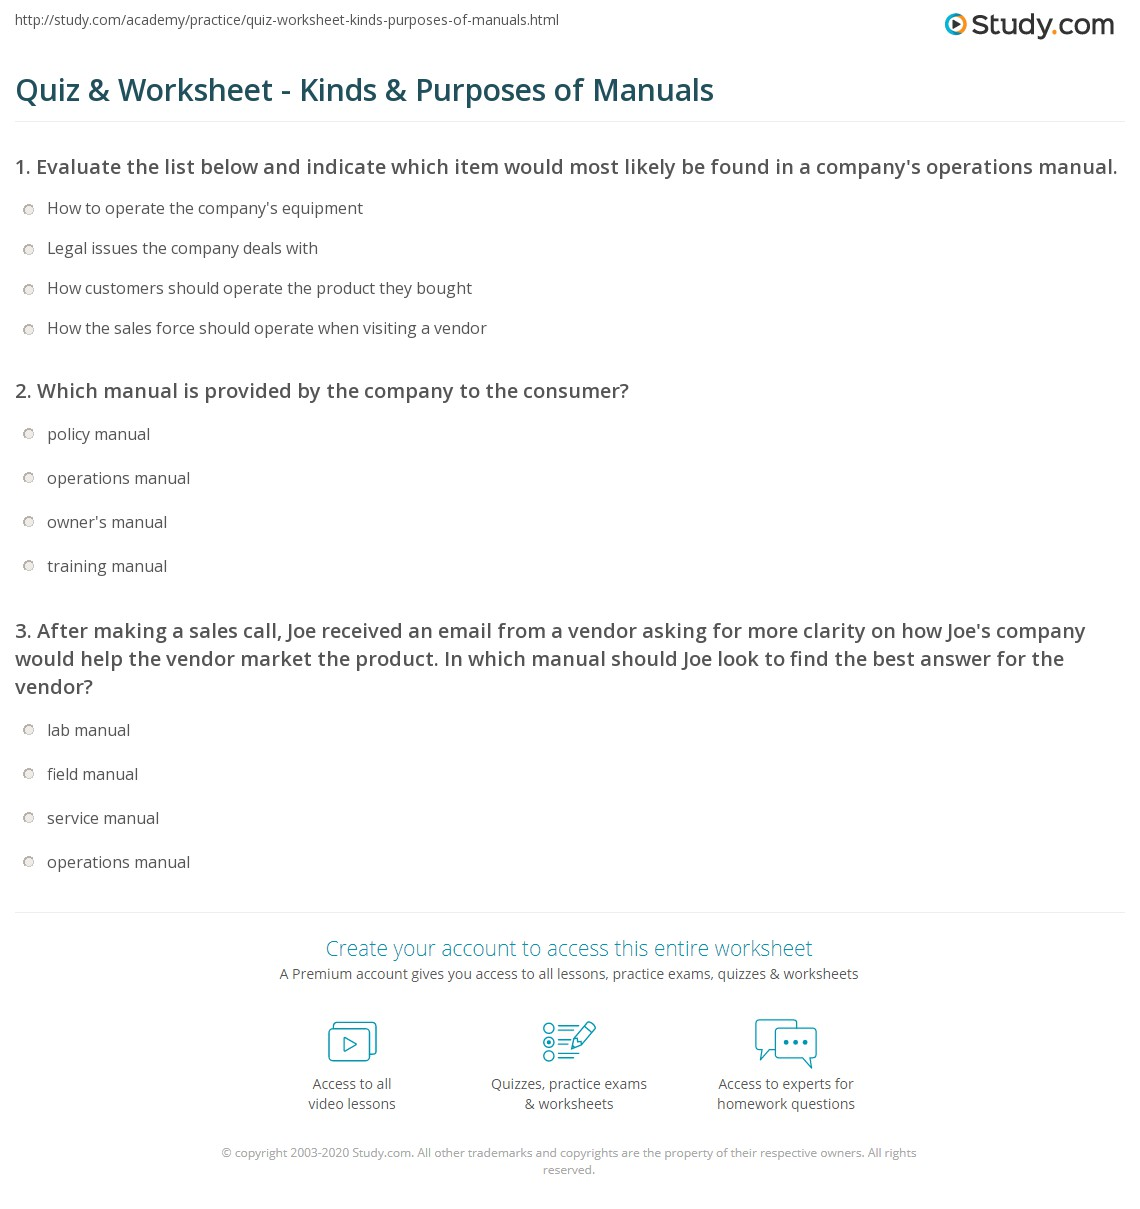 quiz worksheet kinds purposes of manuals study com rh study com types of manual wheelchairs types of manual shifters